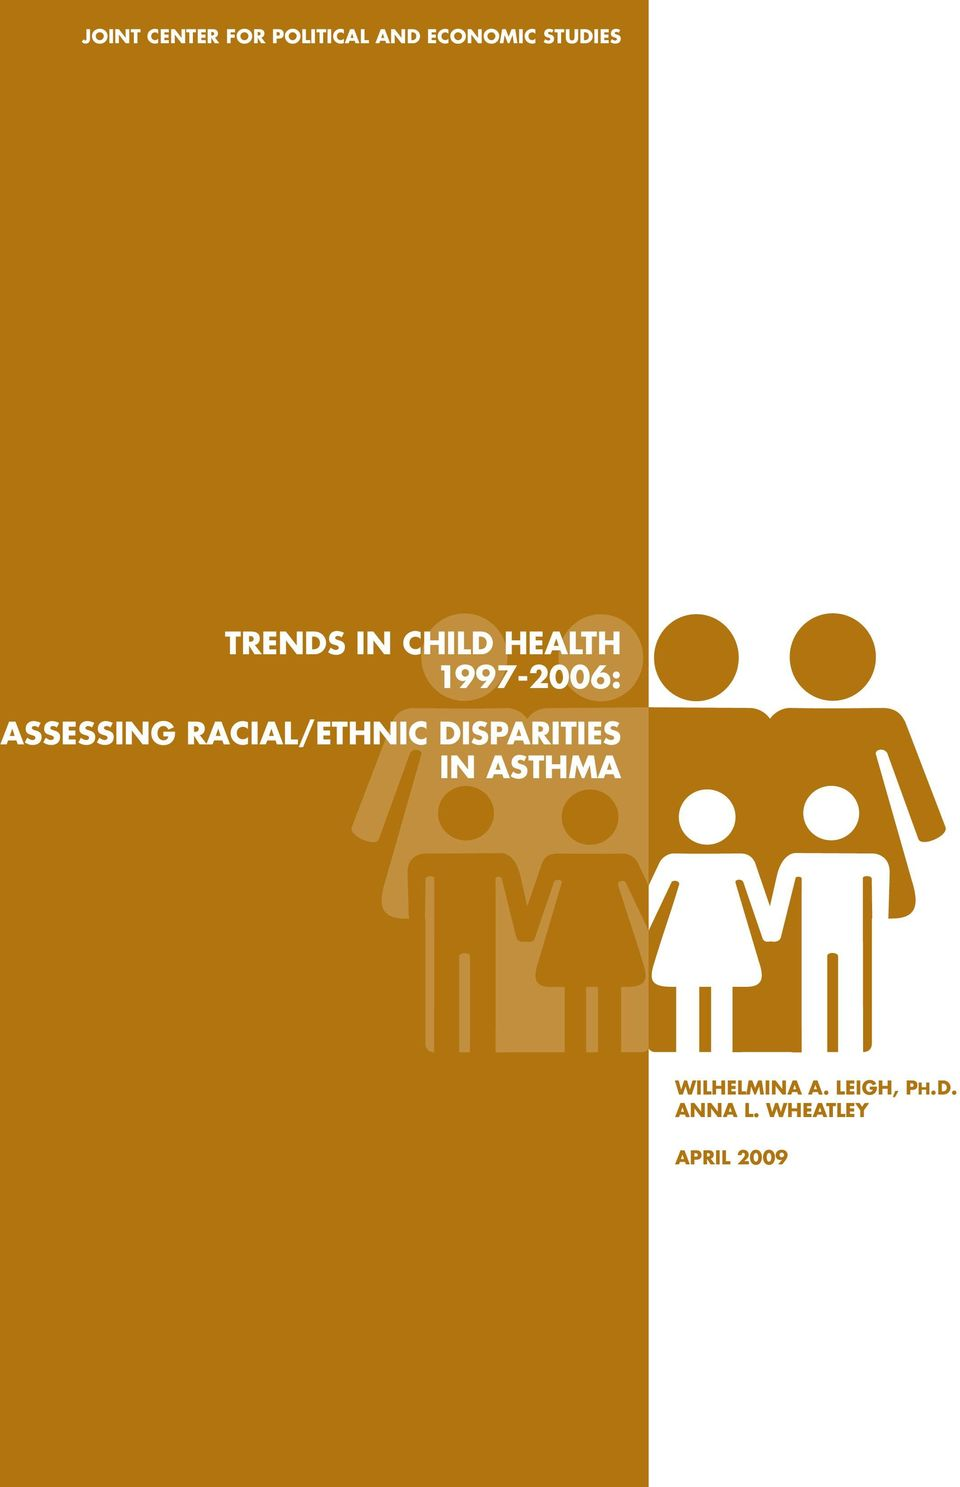 Assessing Racial/Ethnic Disparities in asthma